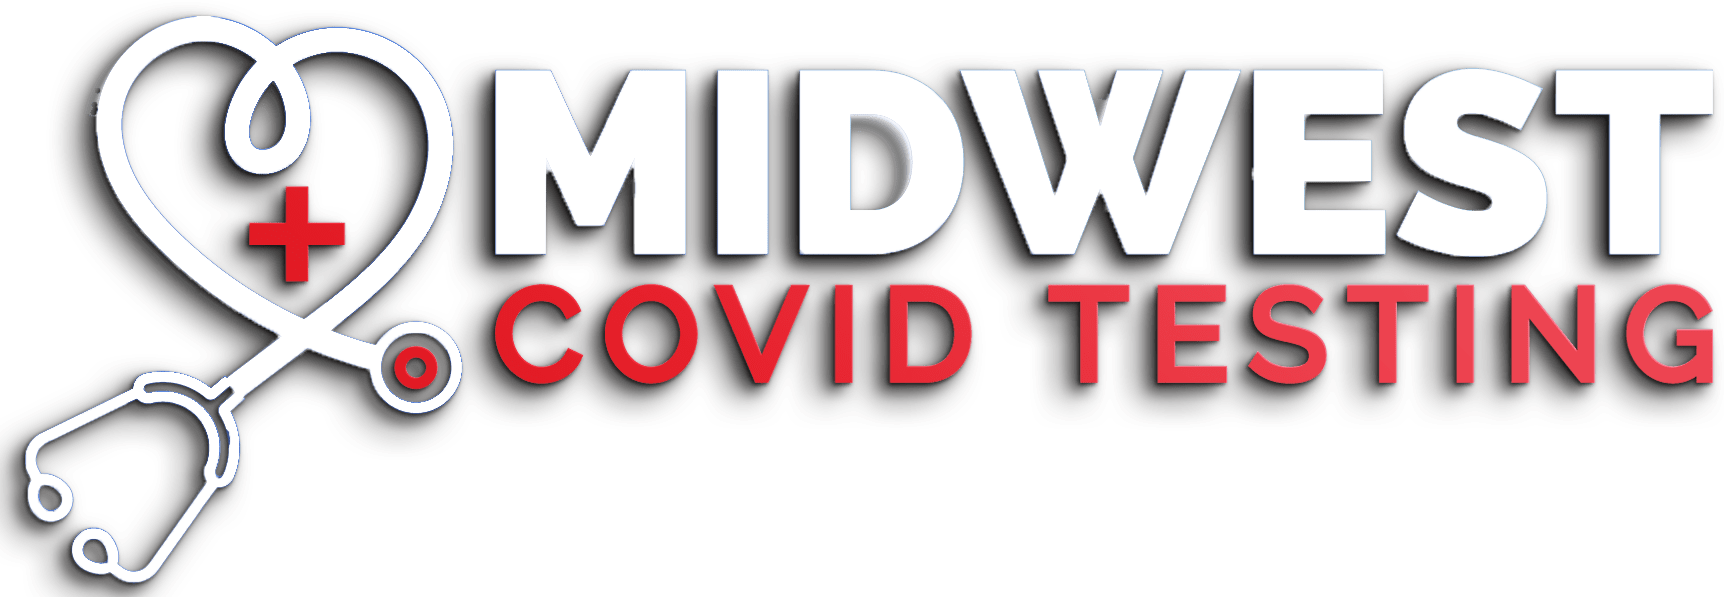 COVID Testing and Rapid Testing in Lemont, IL | Midwest Covid Testing Midwest Covid Testing | Rapid Chicago Covid Testing